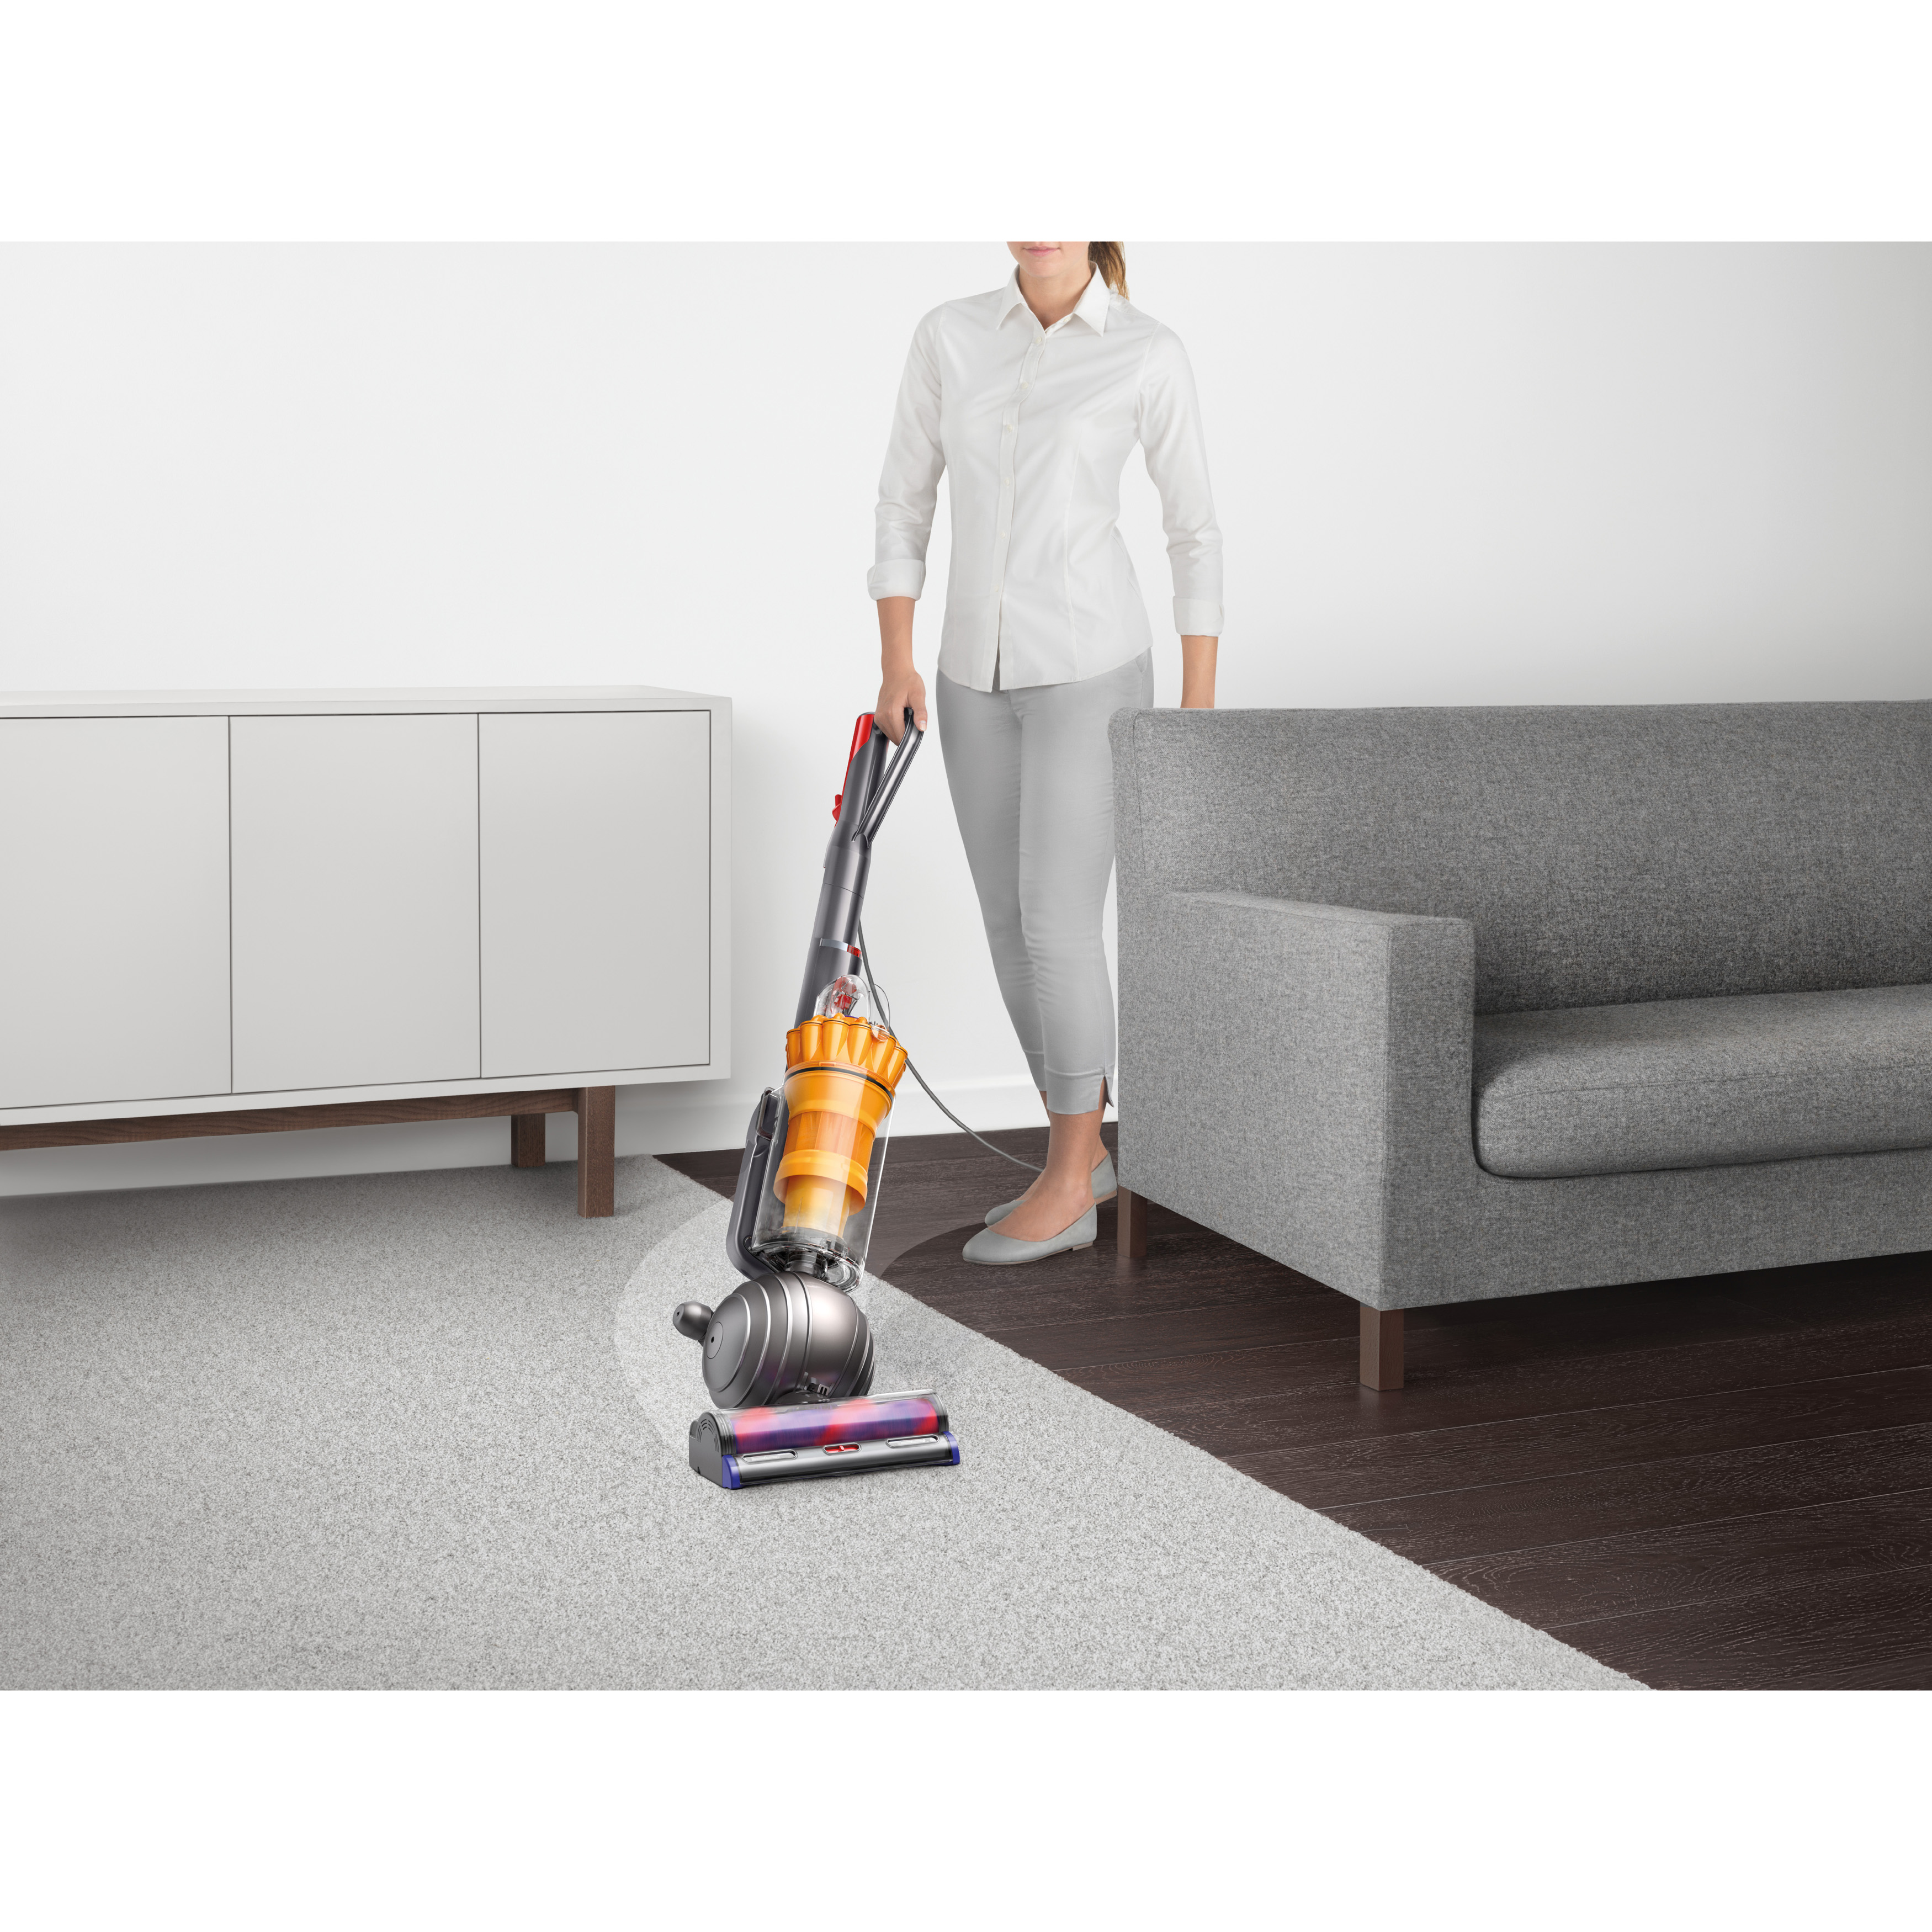 upright light review vacuum cleaner an airborne multi reviews cheapest ball is dyson expert s killer floor